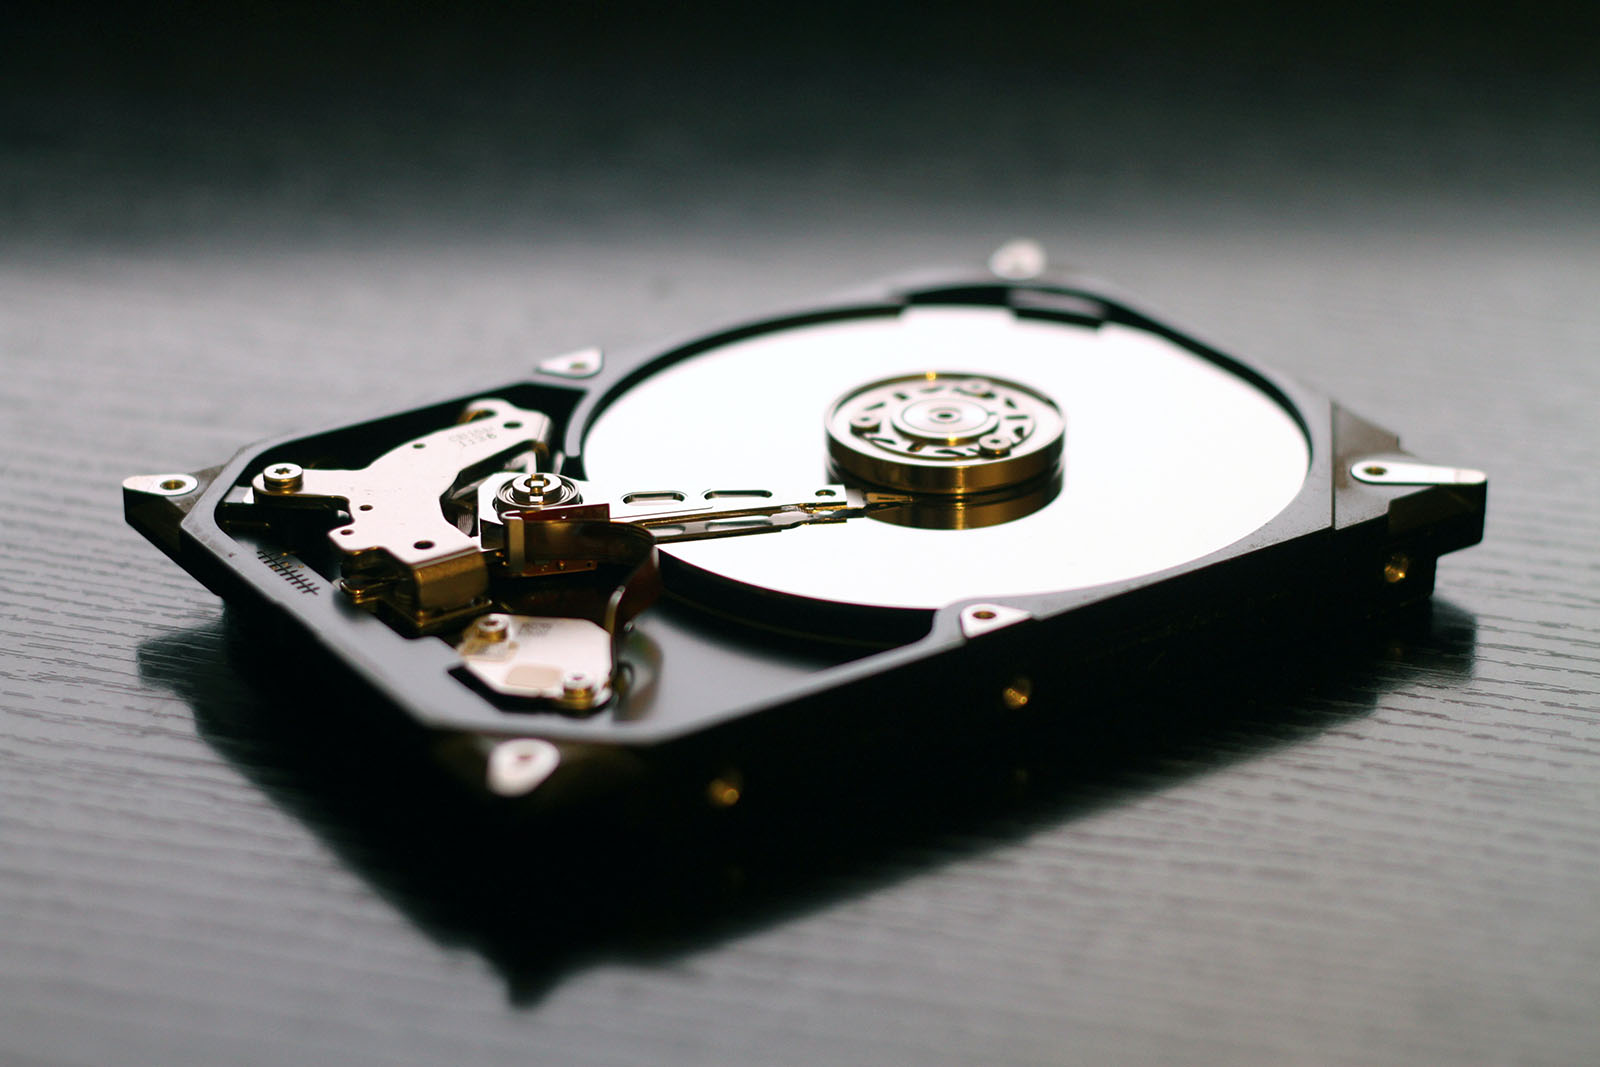 A close up of a hard disk drive.